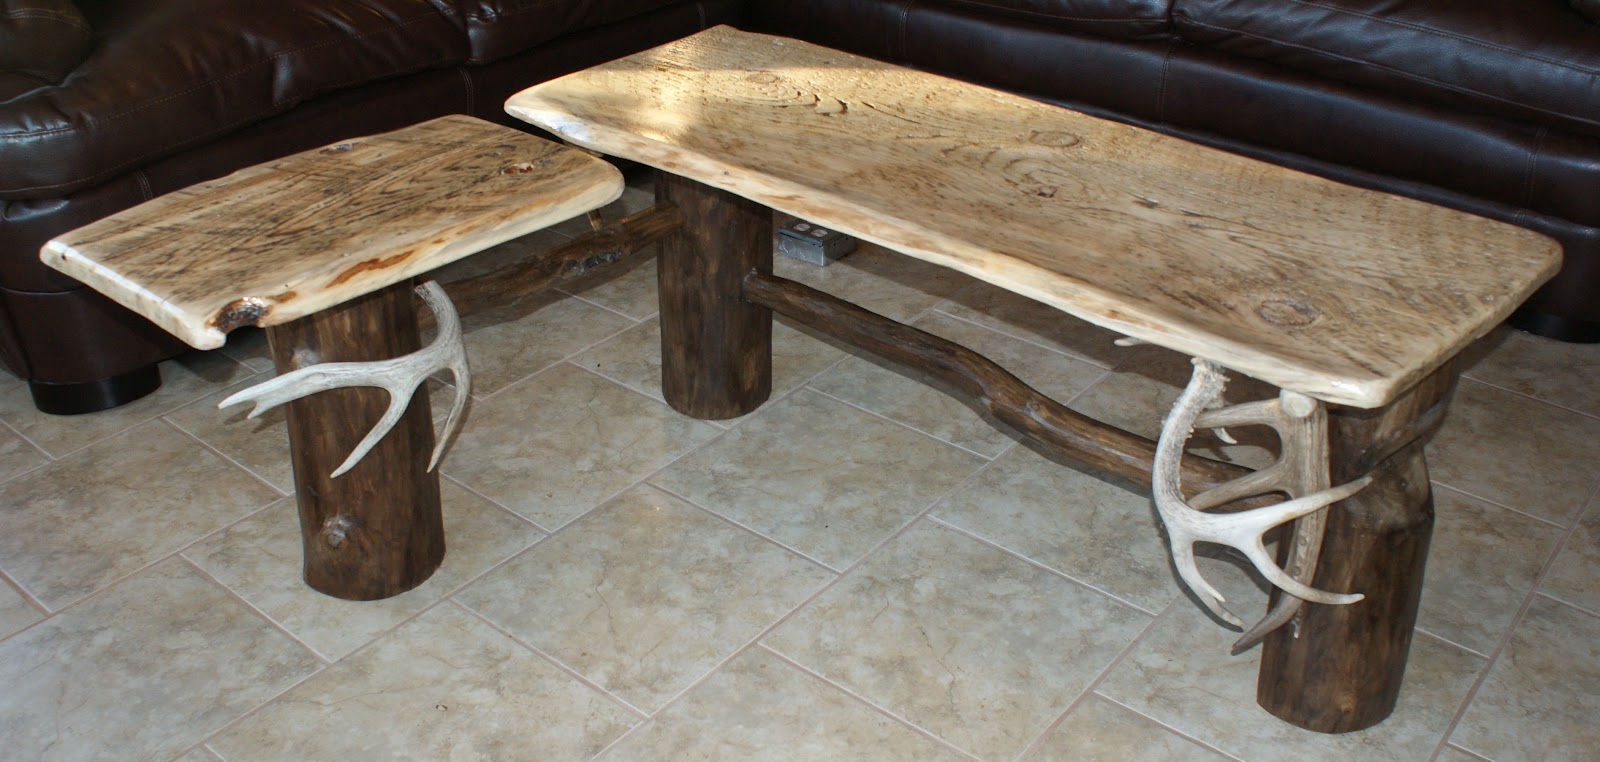 Off the grid at 30 frugal tuesday homemade coffee table frugal tuesday homemade coffee table geotapseo Gallery